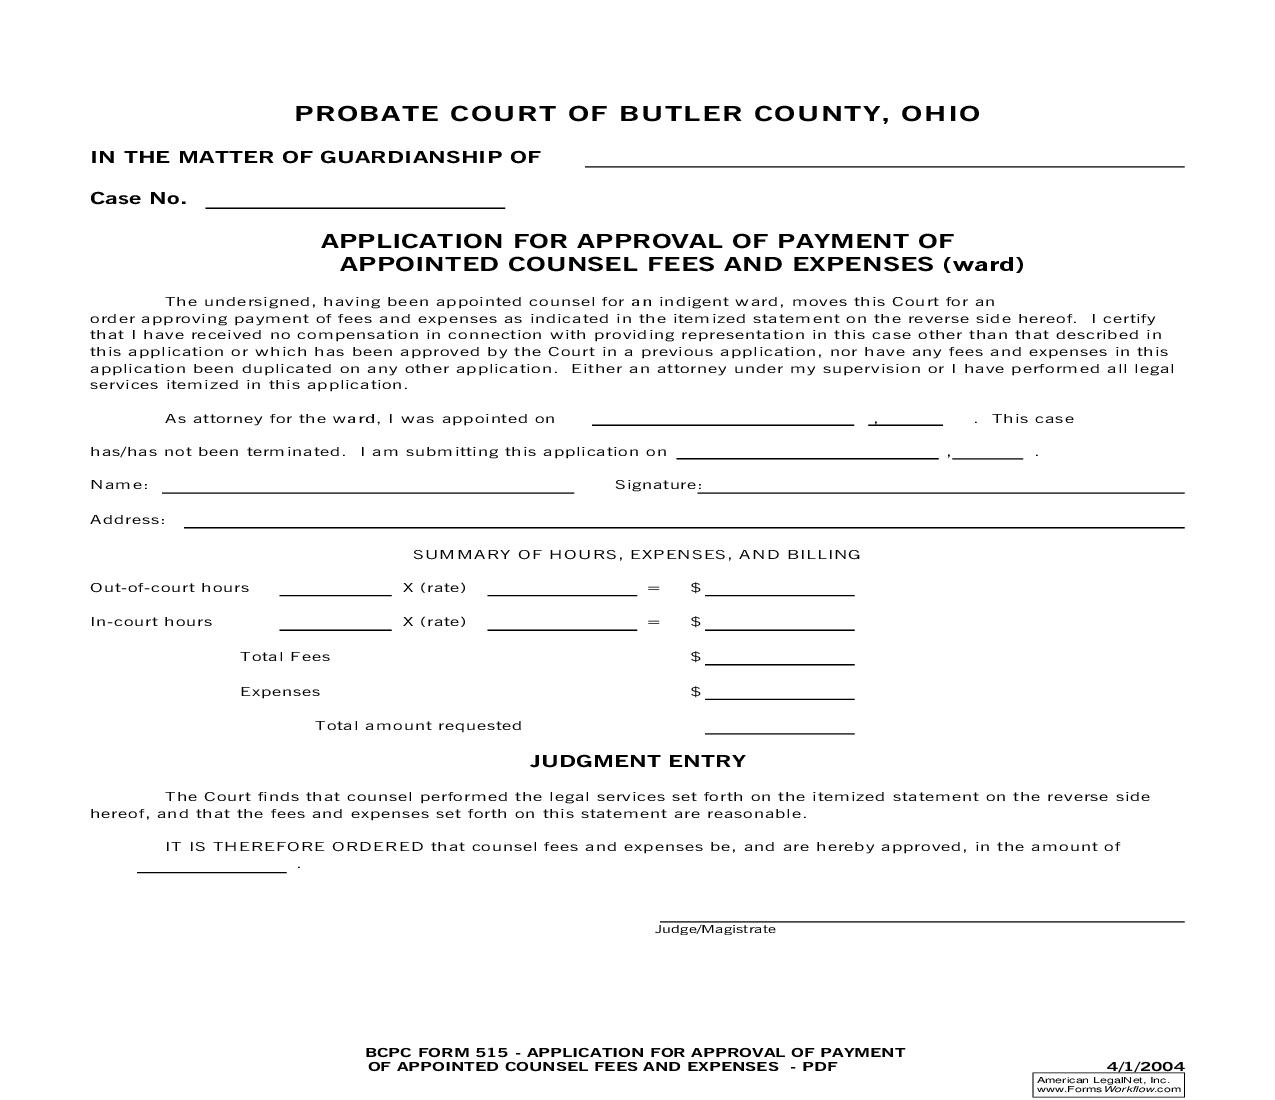 Application For Approval Of Payment Of Appointed Counsel Fees And Expenses {515} | Pdf Fpdf Doc Docx | Ohio